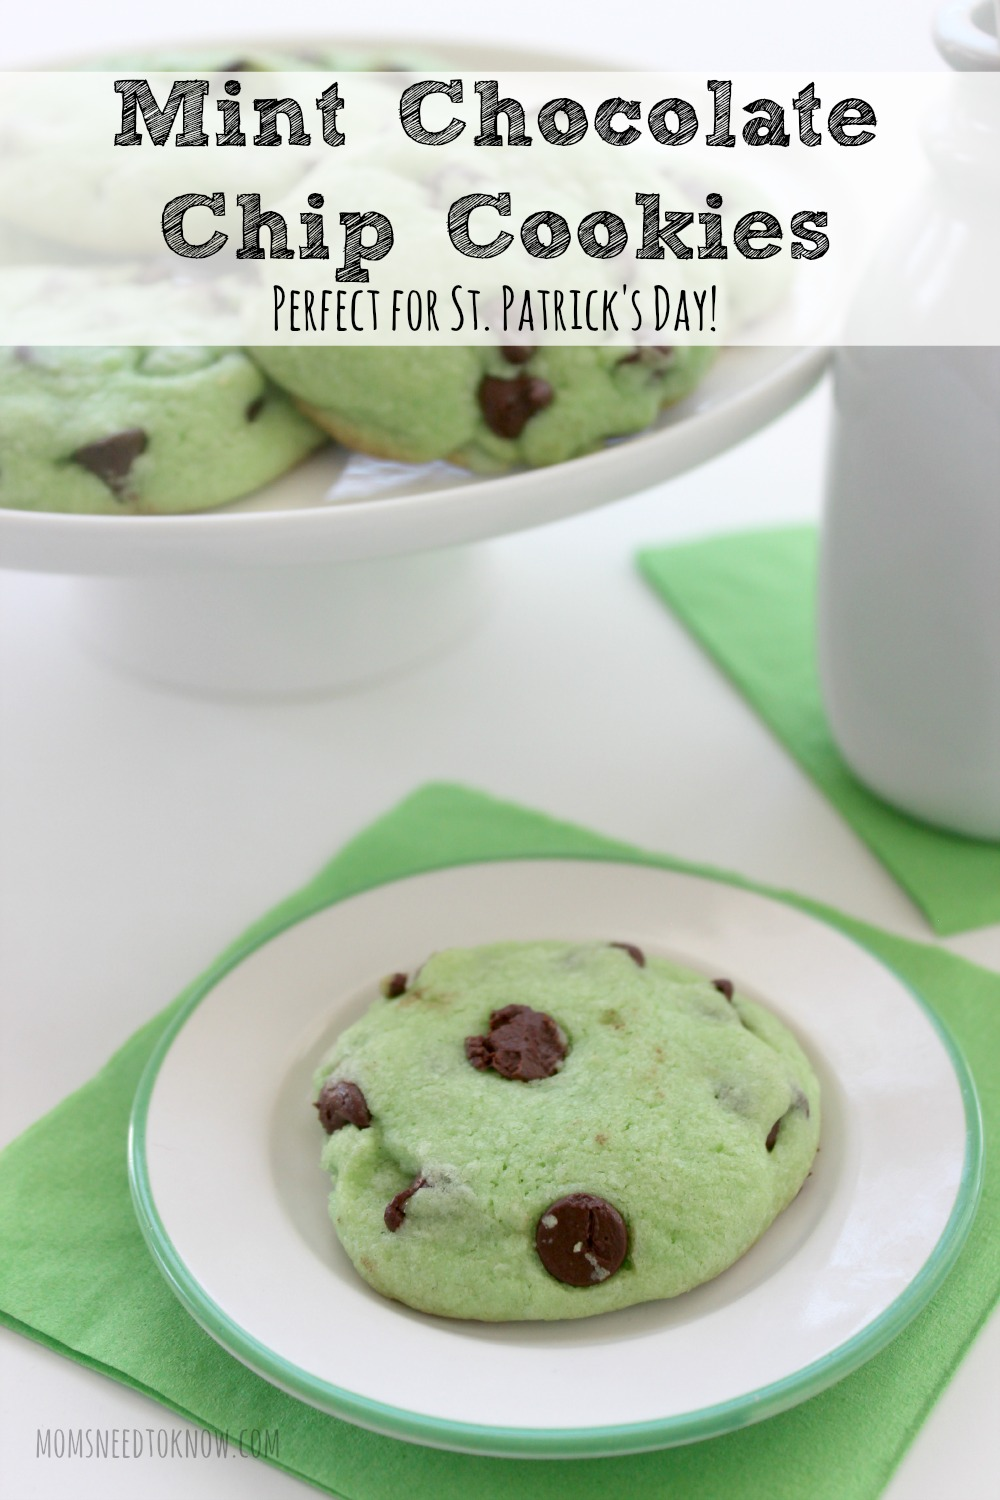 This Mint Chocolate Chip cookie recipe is a favorite in our house! So easy to make and a fun alternative to regular chocolate chip cookies.